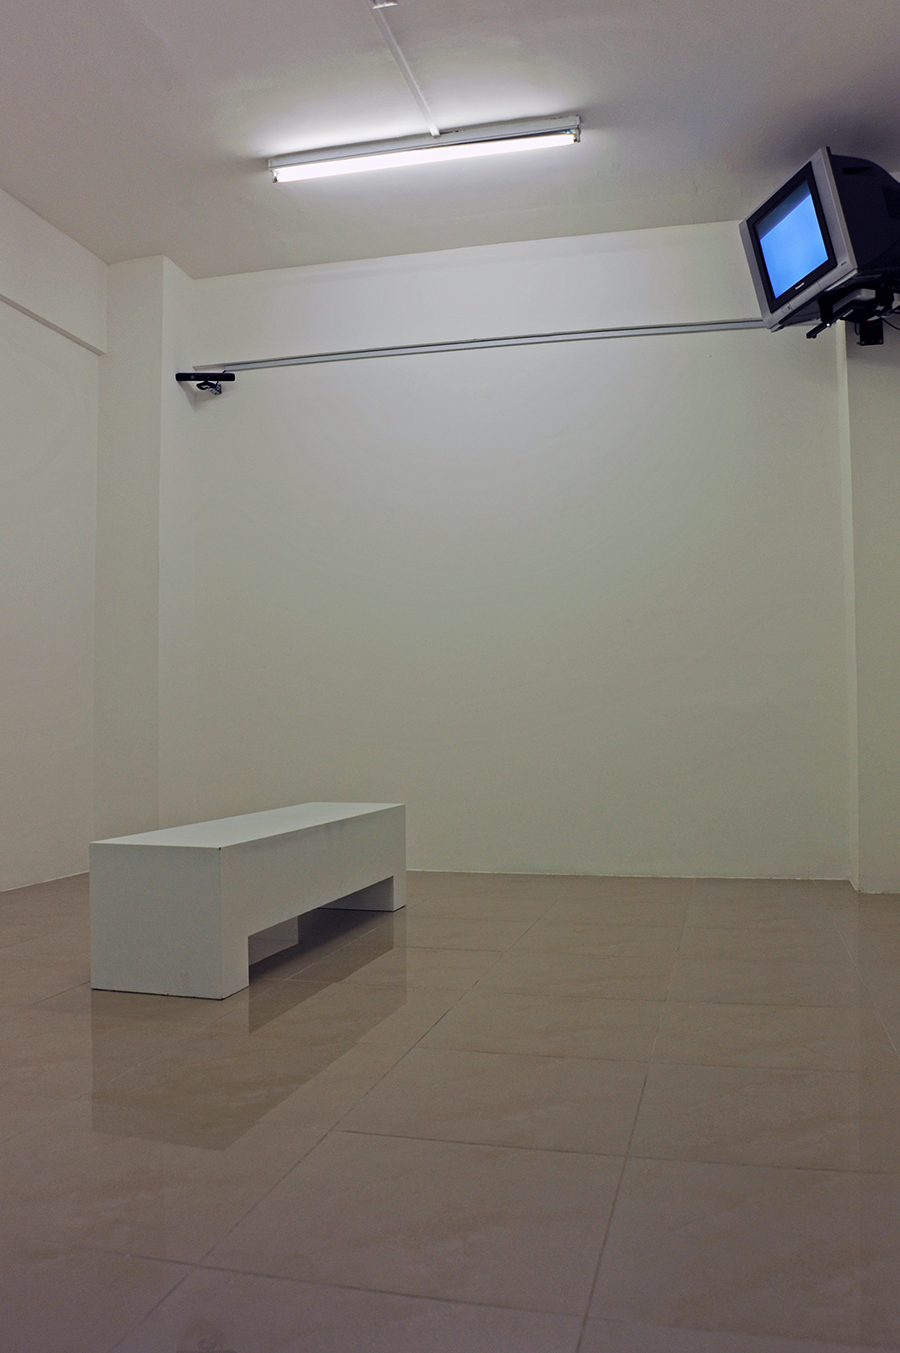 Installation of Experience Image